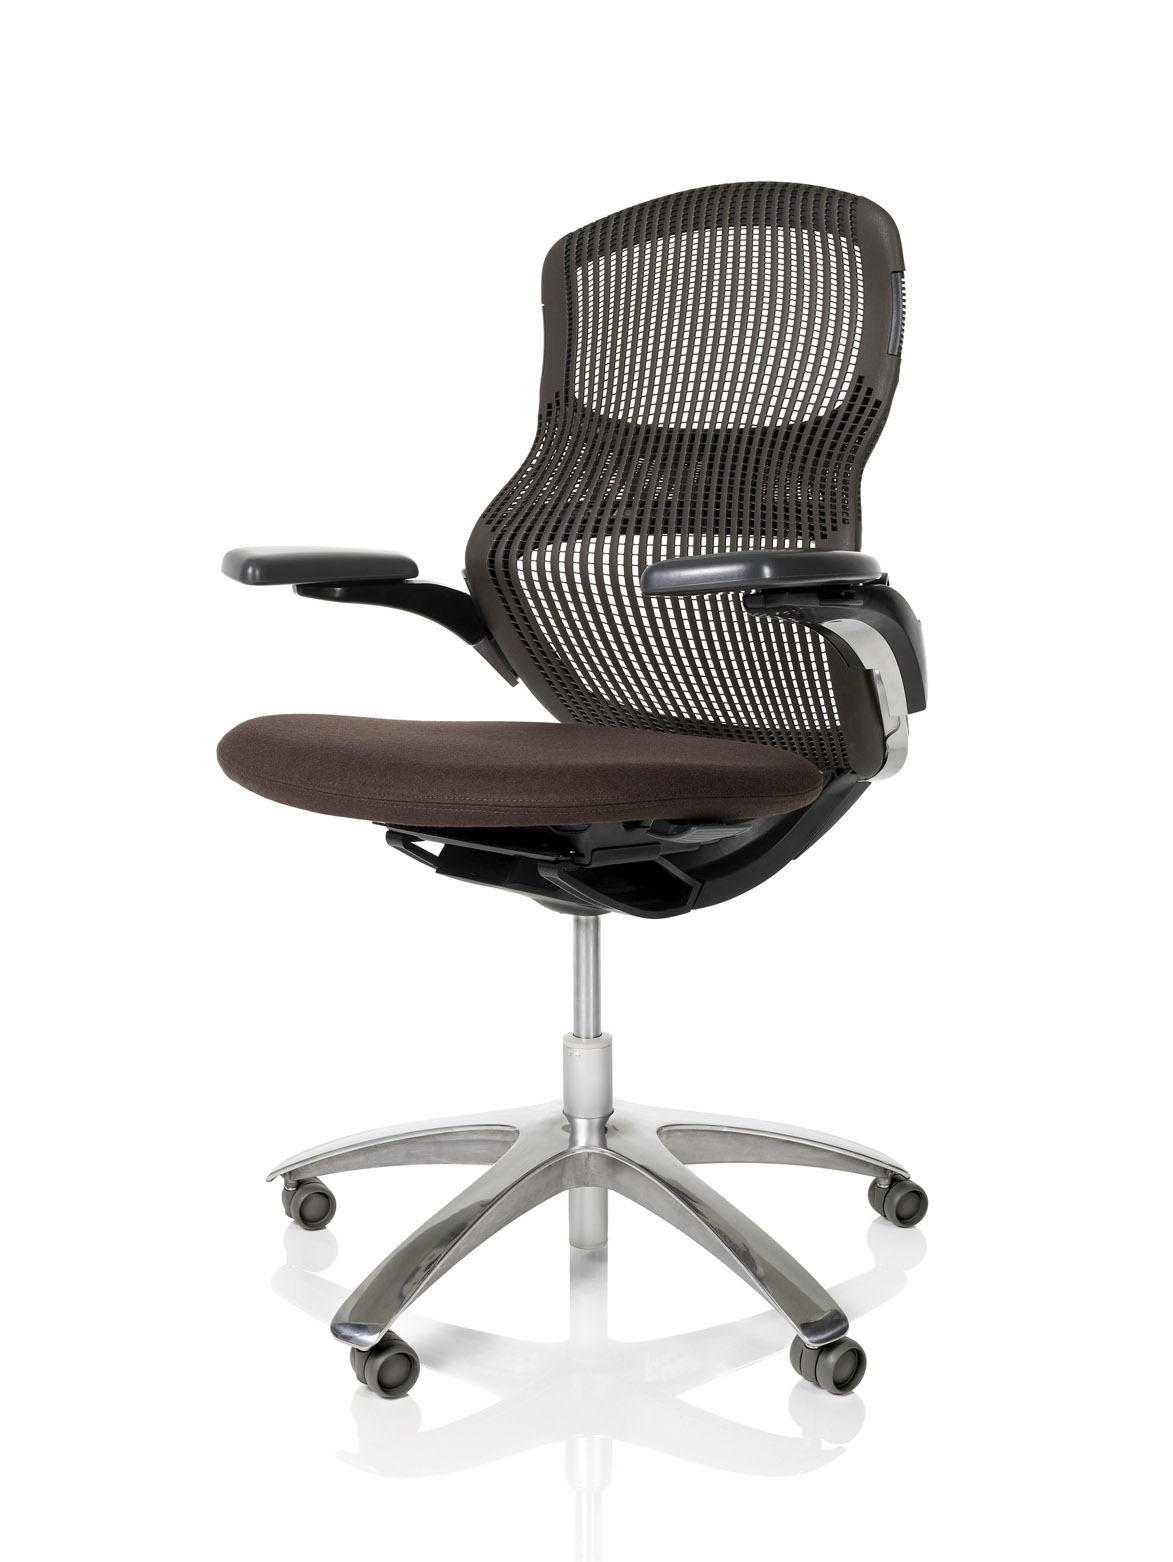 Knoll Generation Task Chair Grosfillex Chaise Lounge Chairs Heels Or Think I Know It 39s Just A